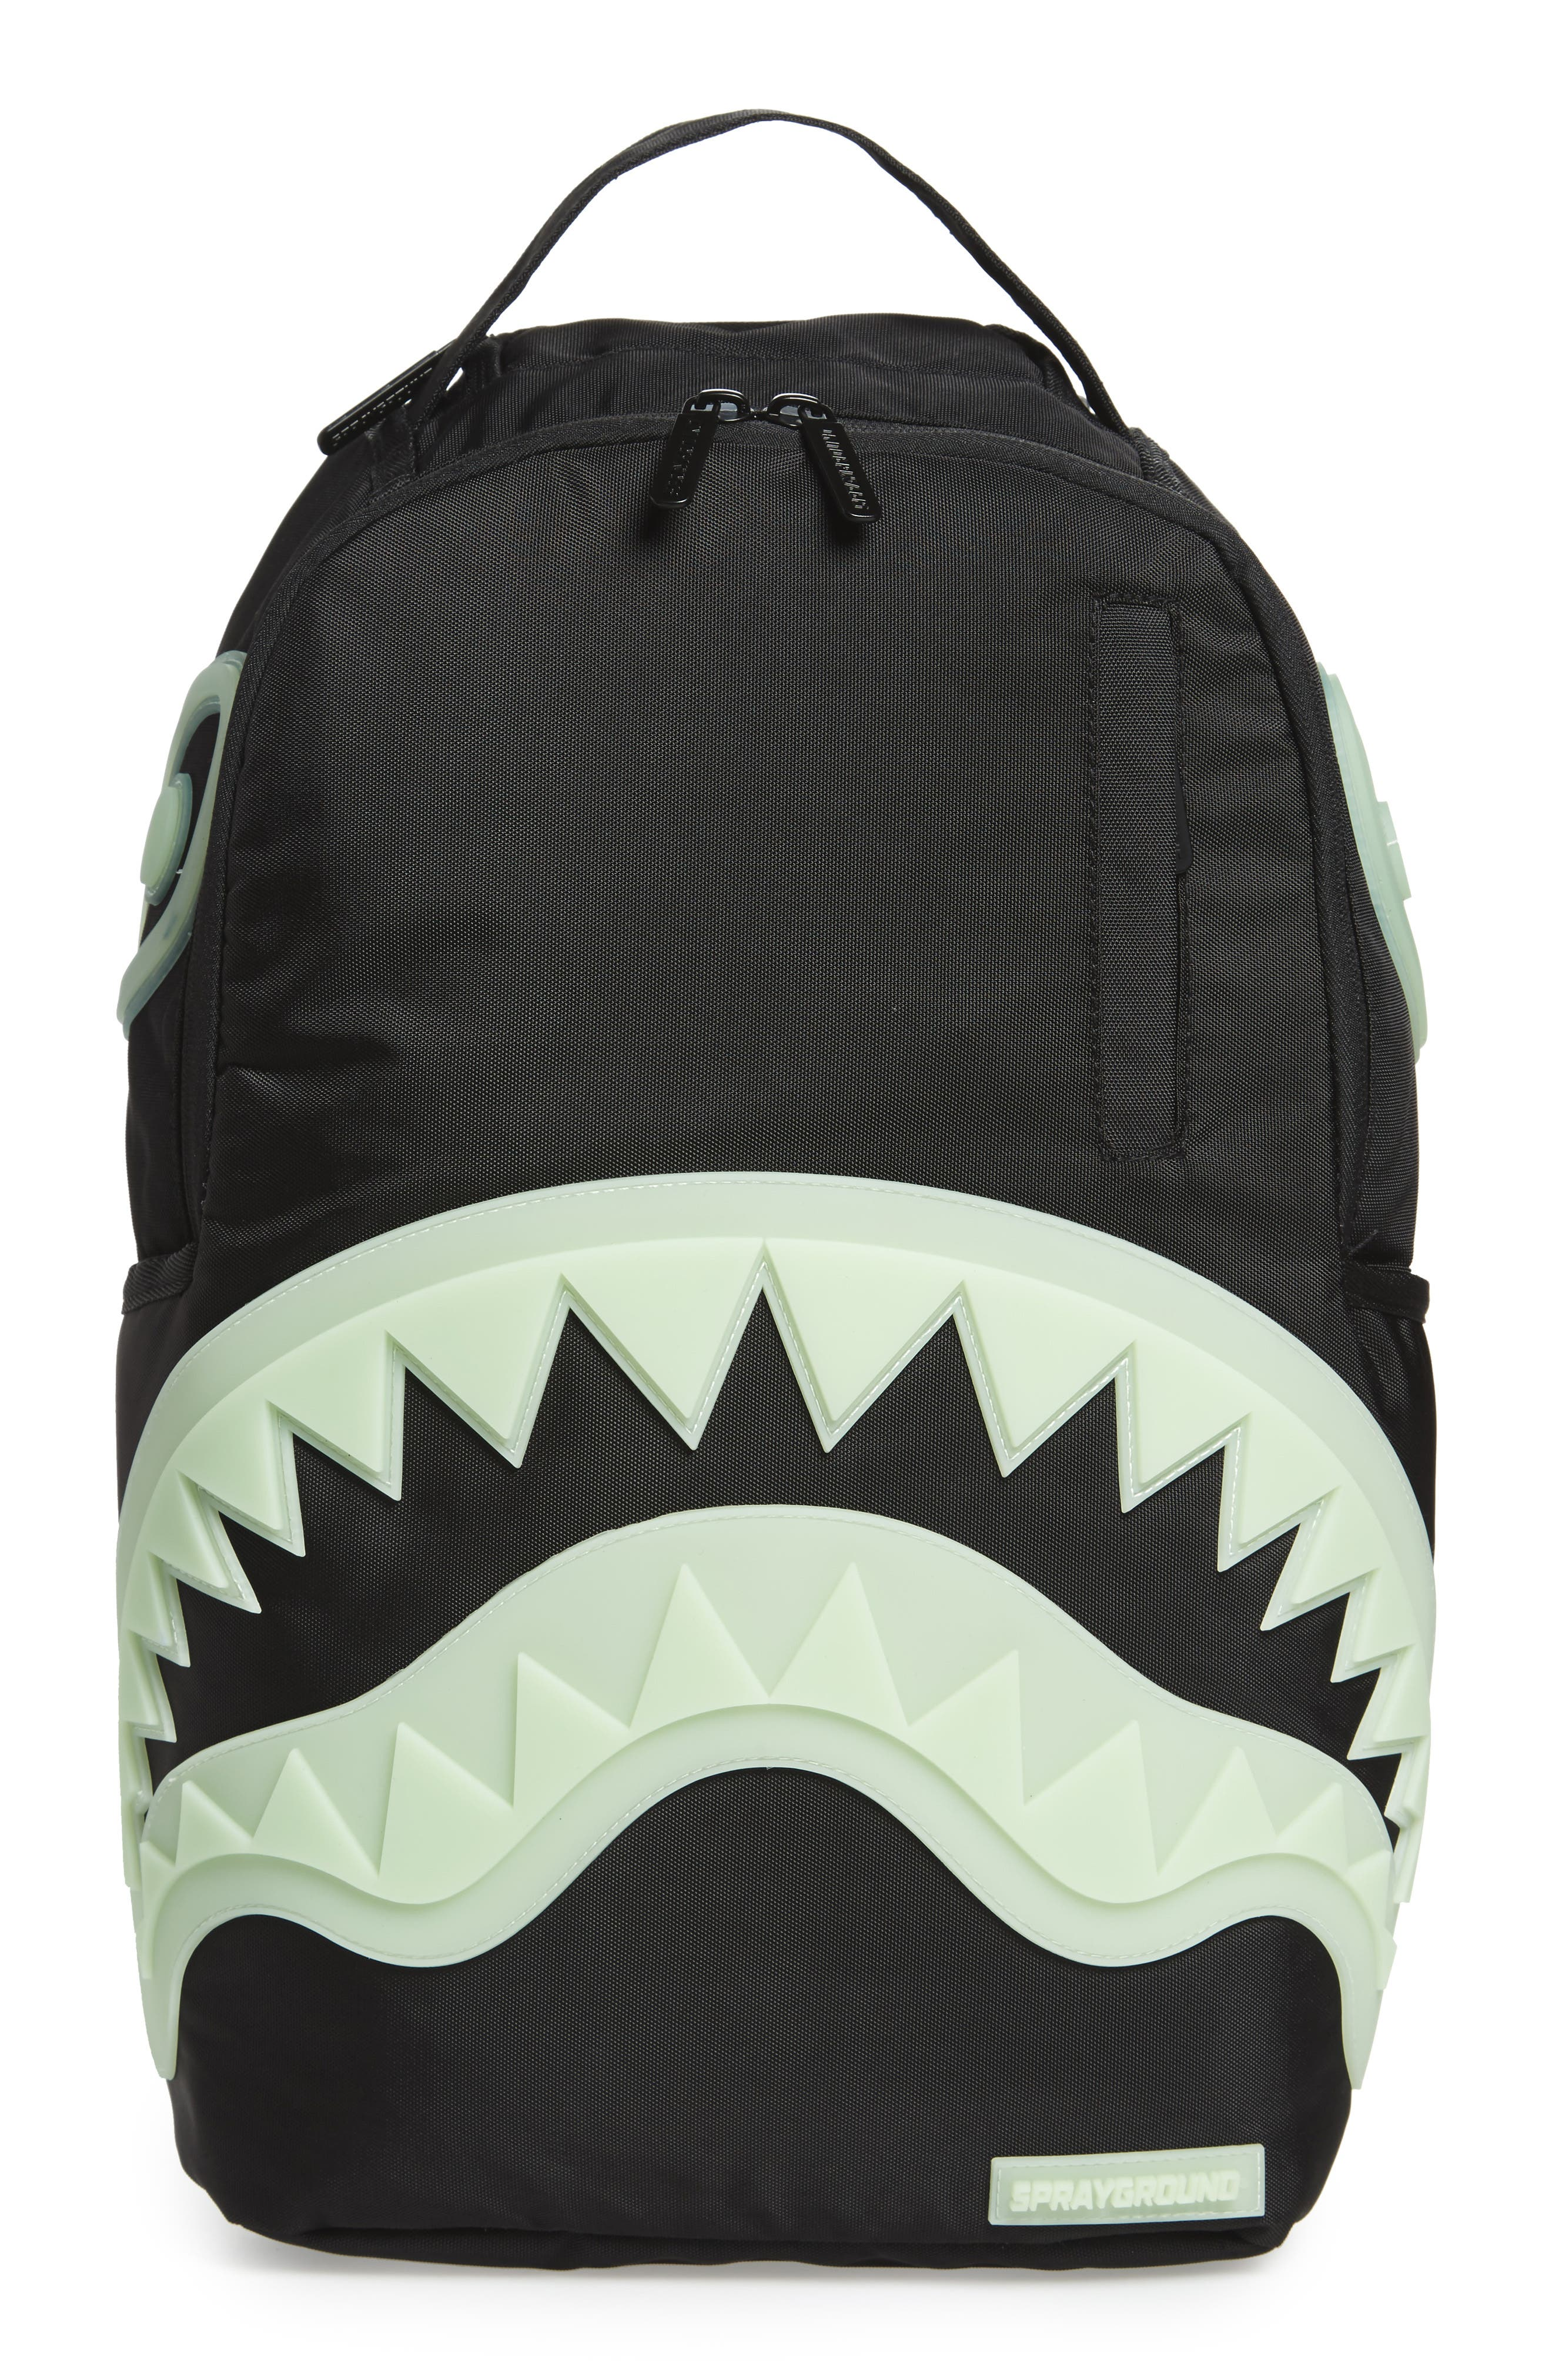 Glow in the Dark Shark Backpack,                         Main,                         color, Black